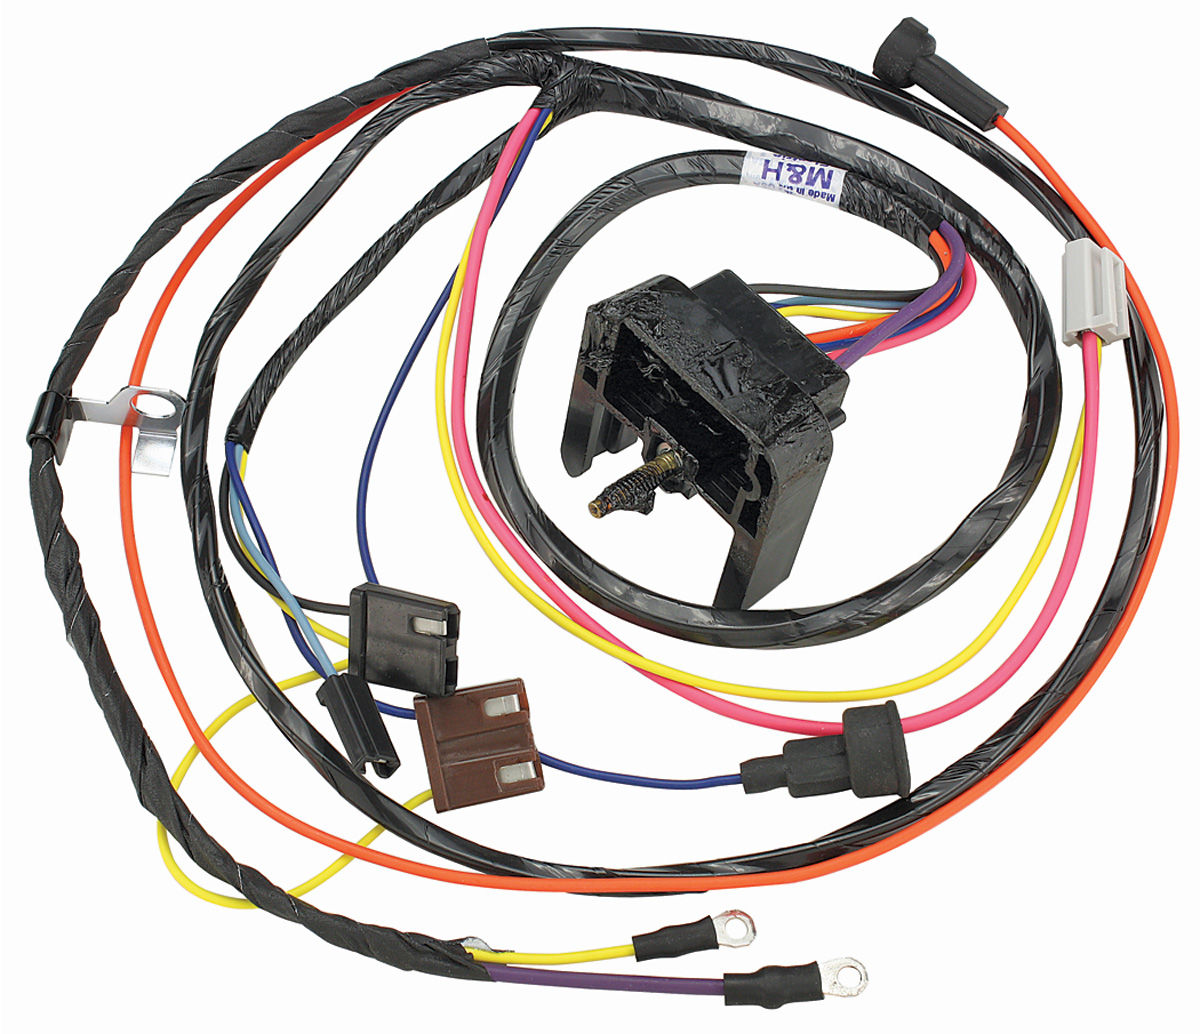 Wiring Harness, Engine, 1969 Chevelle/El Camino, SB V8/HEI/Warning Lights @  OPGI.com | 1980 El Camino Wiring Harness |  | OPGI